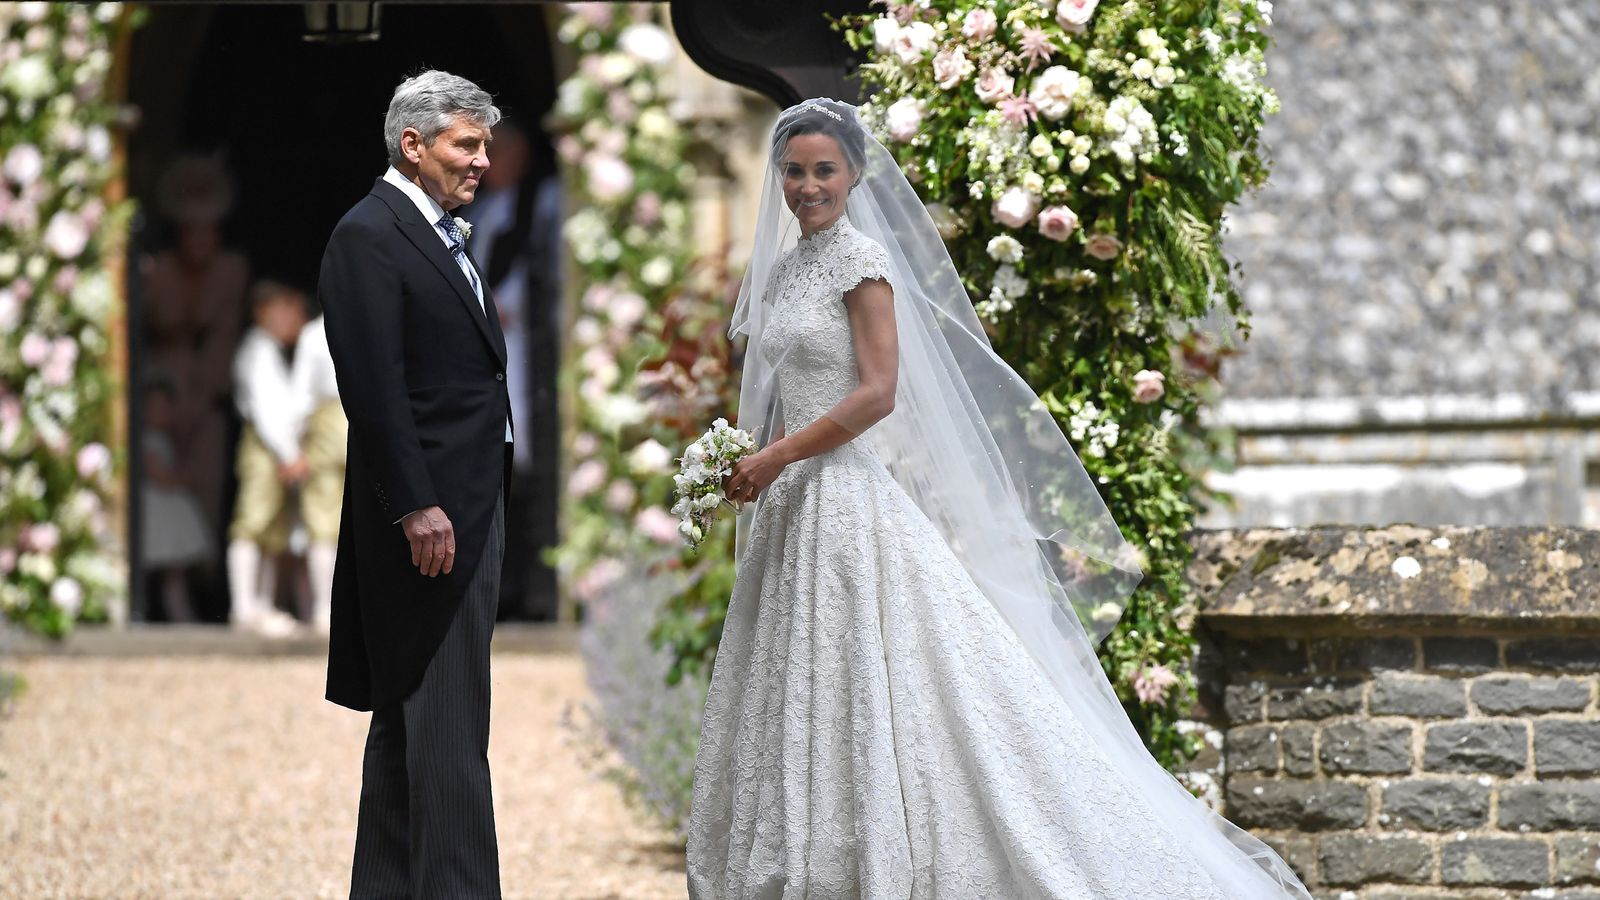 The story behind Pippa Middleton's wedding dress